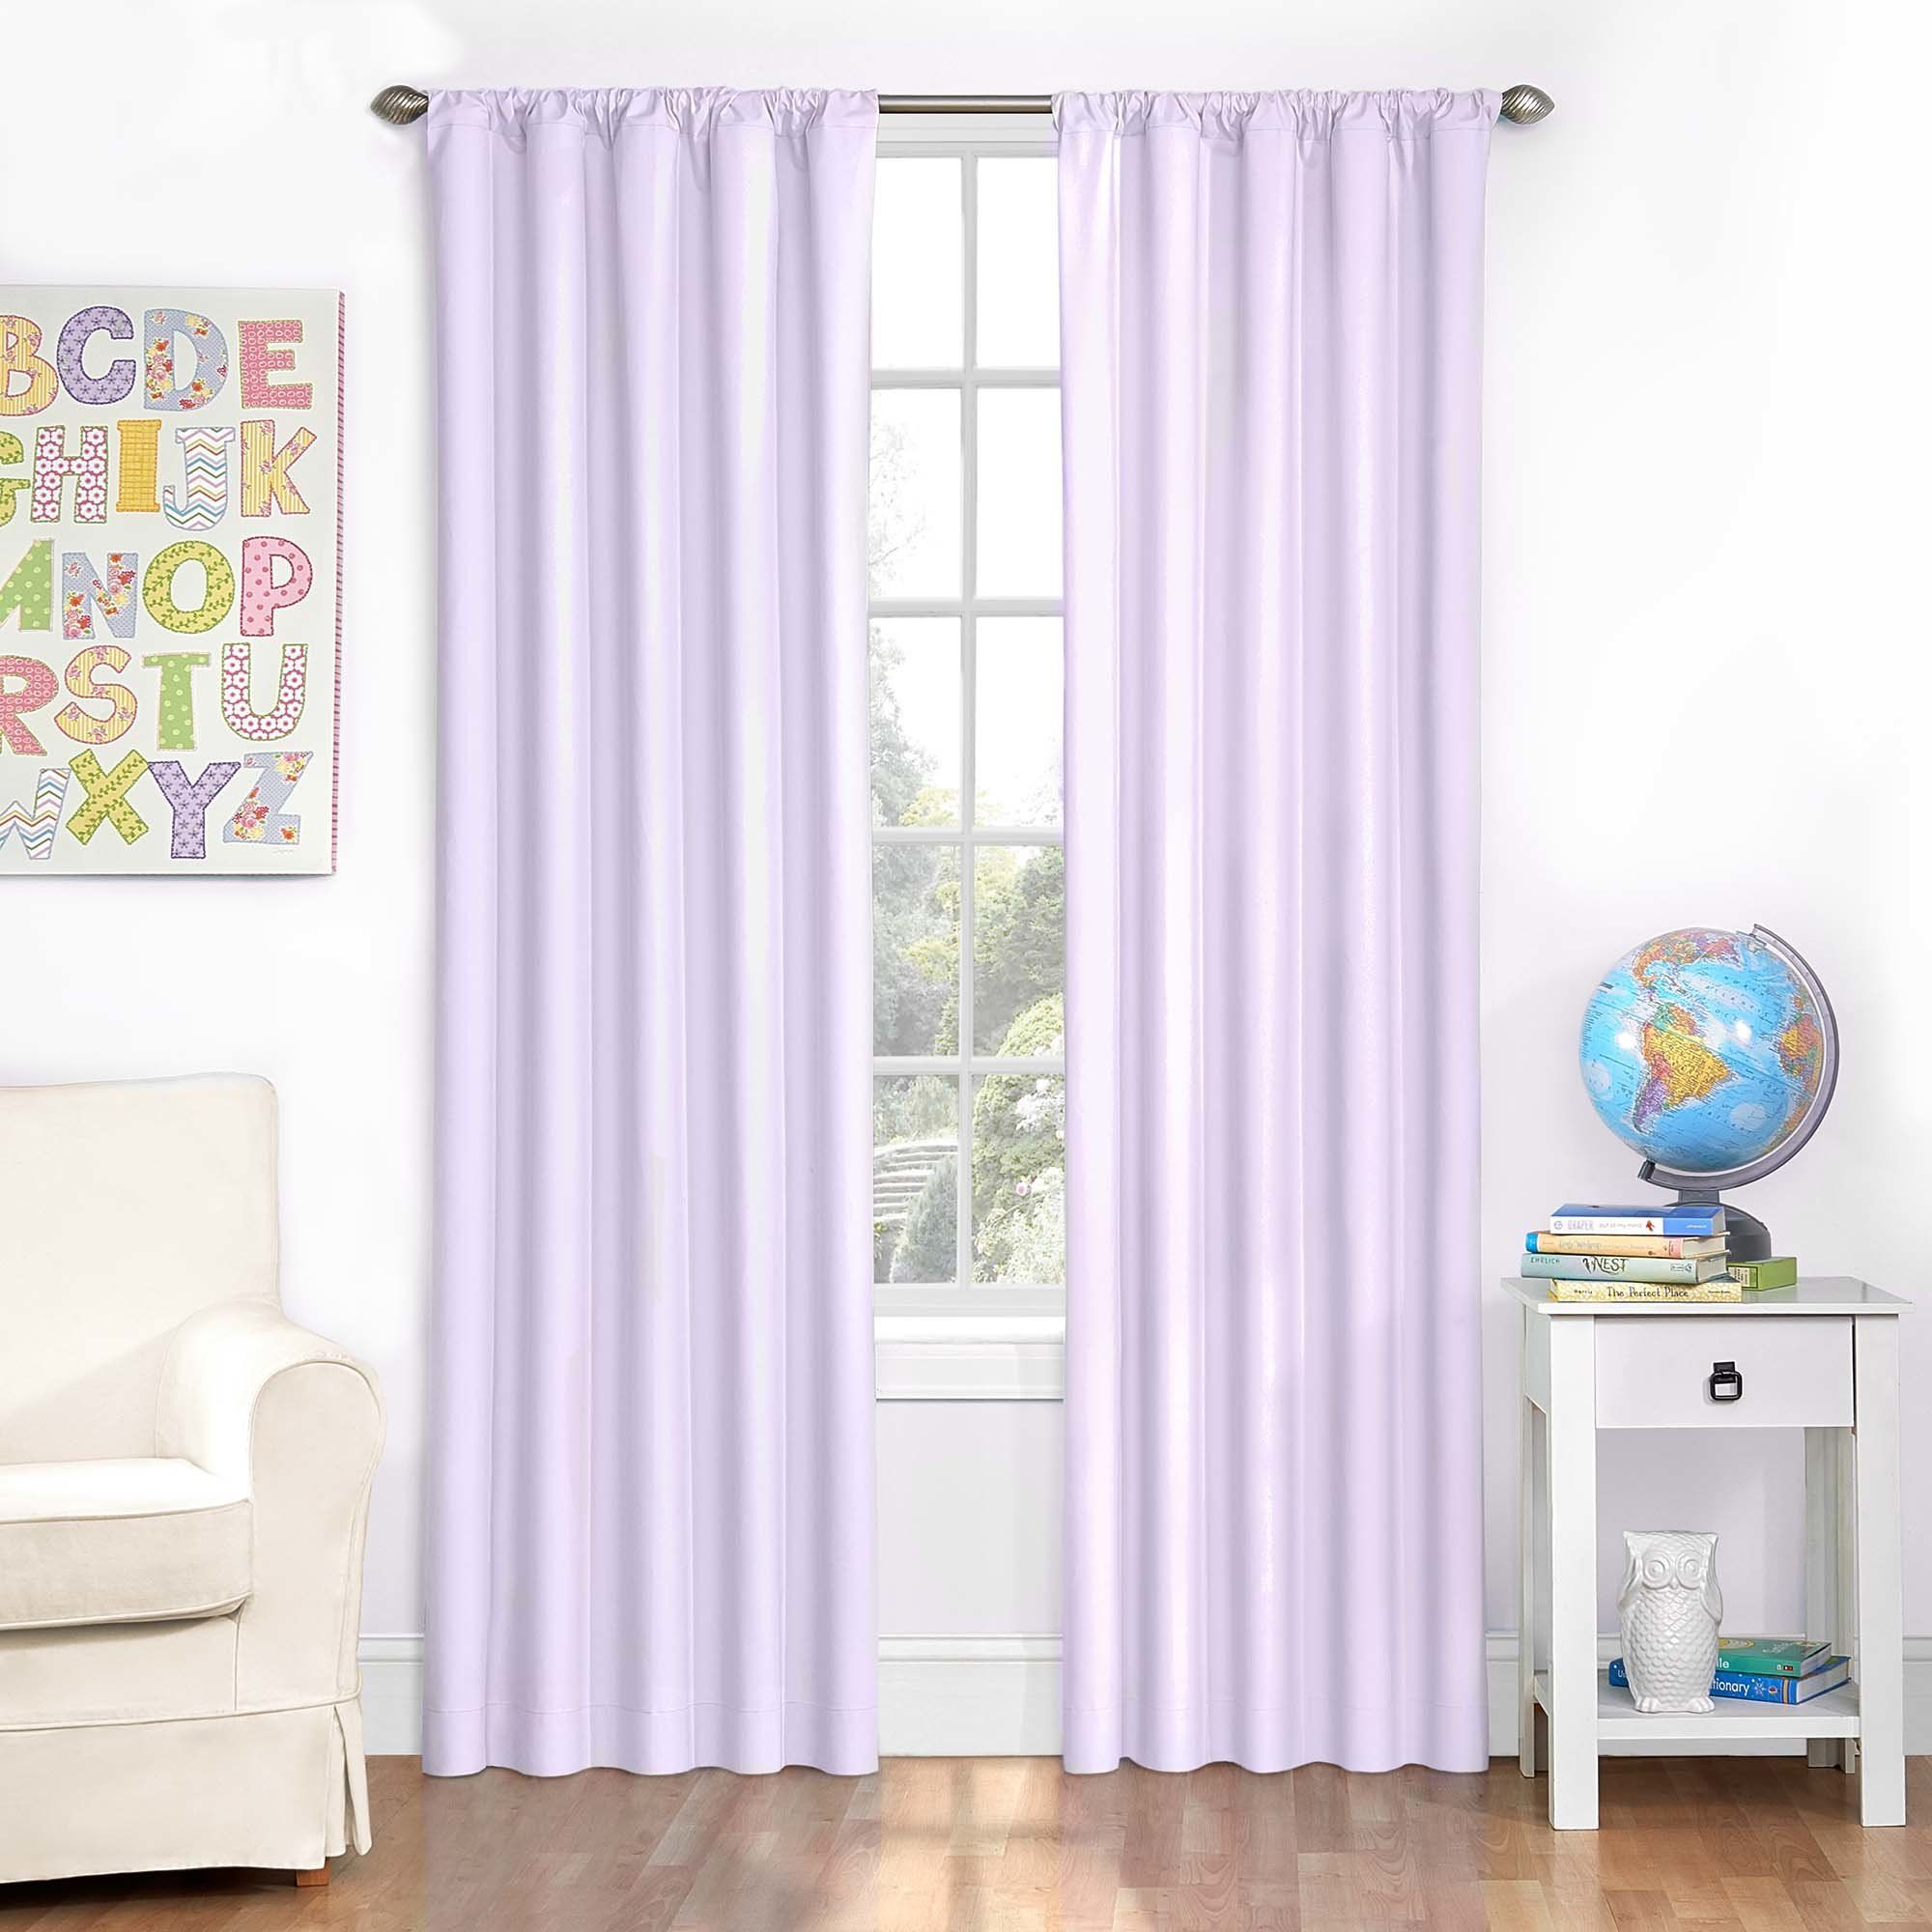 the interior tsumi curtain pocket best sun barrow efficient from of manufacturer energy curtains design zero darkening rod luxury room eclipse